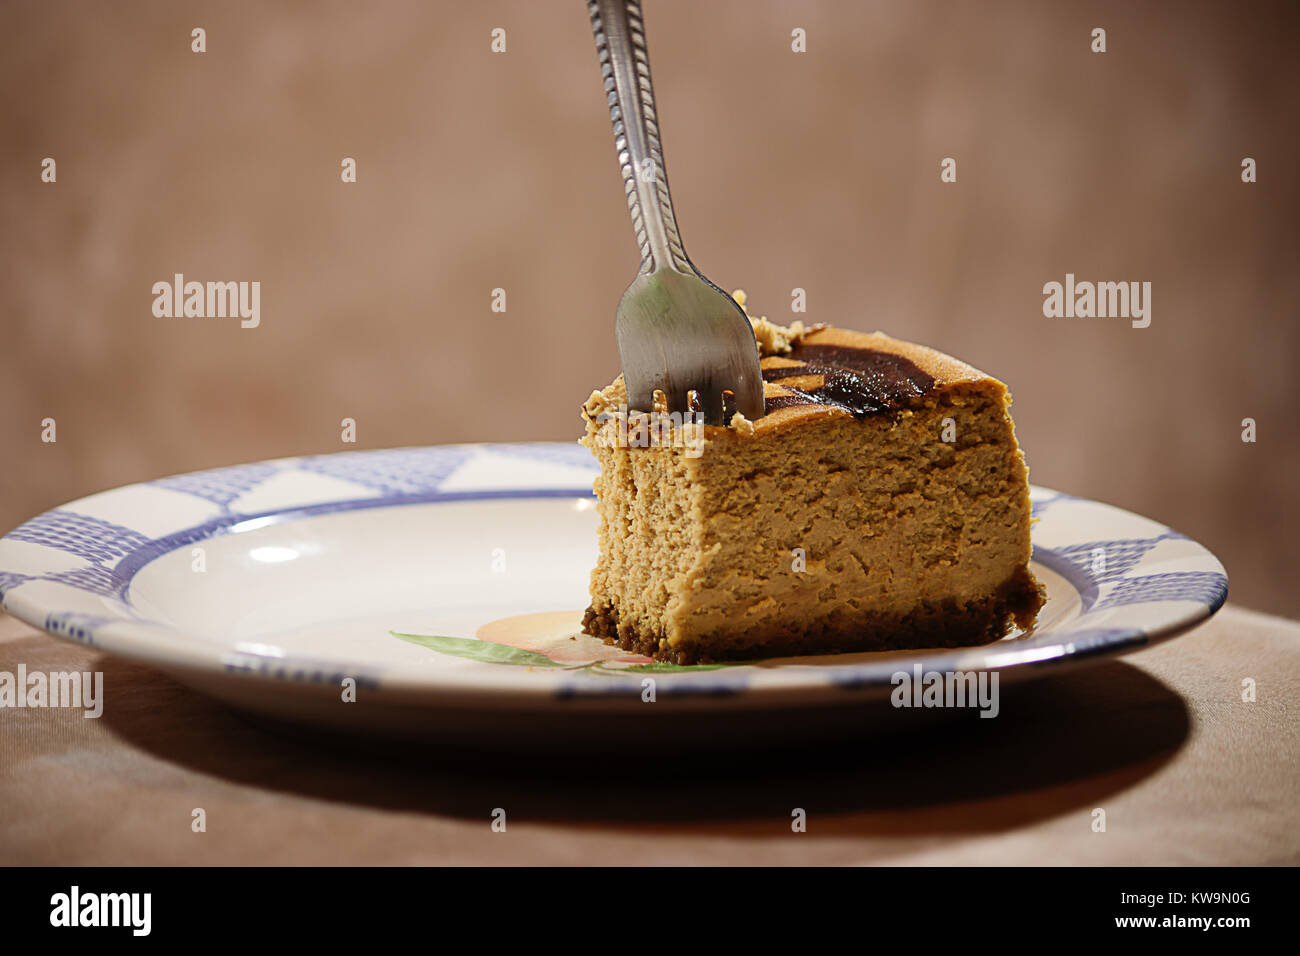 fork stuck in part of a pumpkin cheesecake against brown background - Stock Image